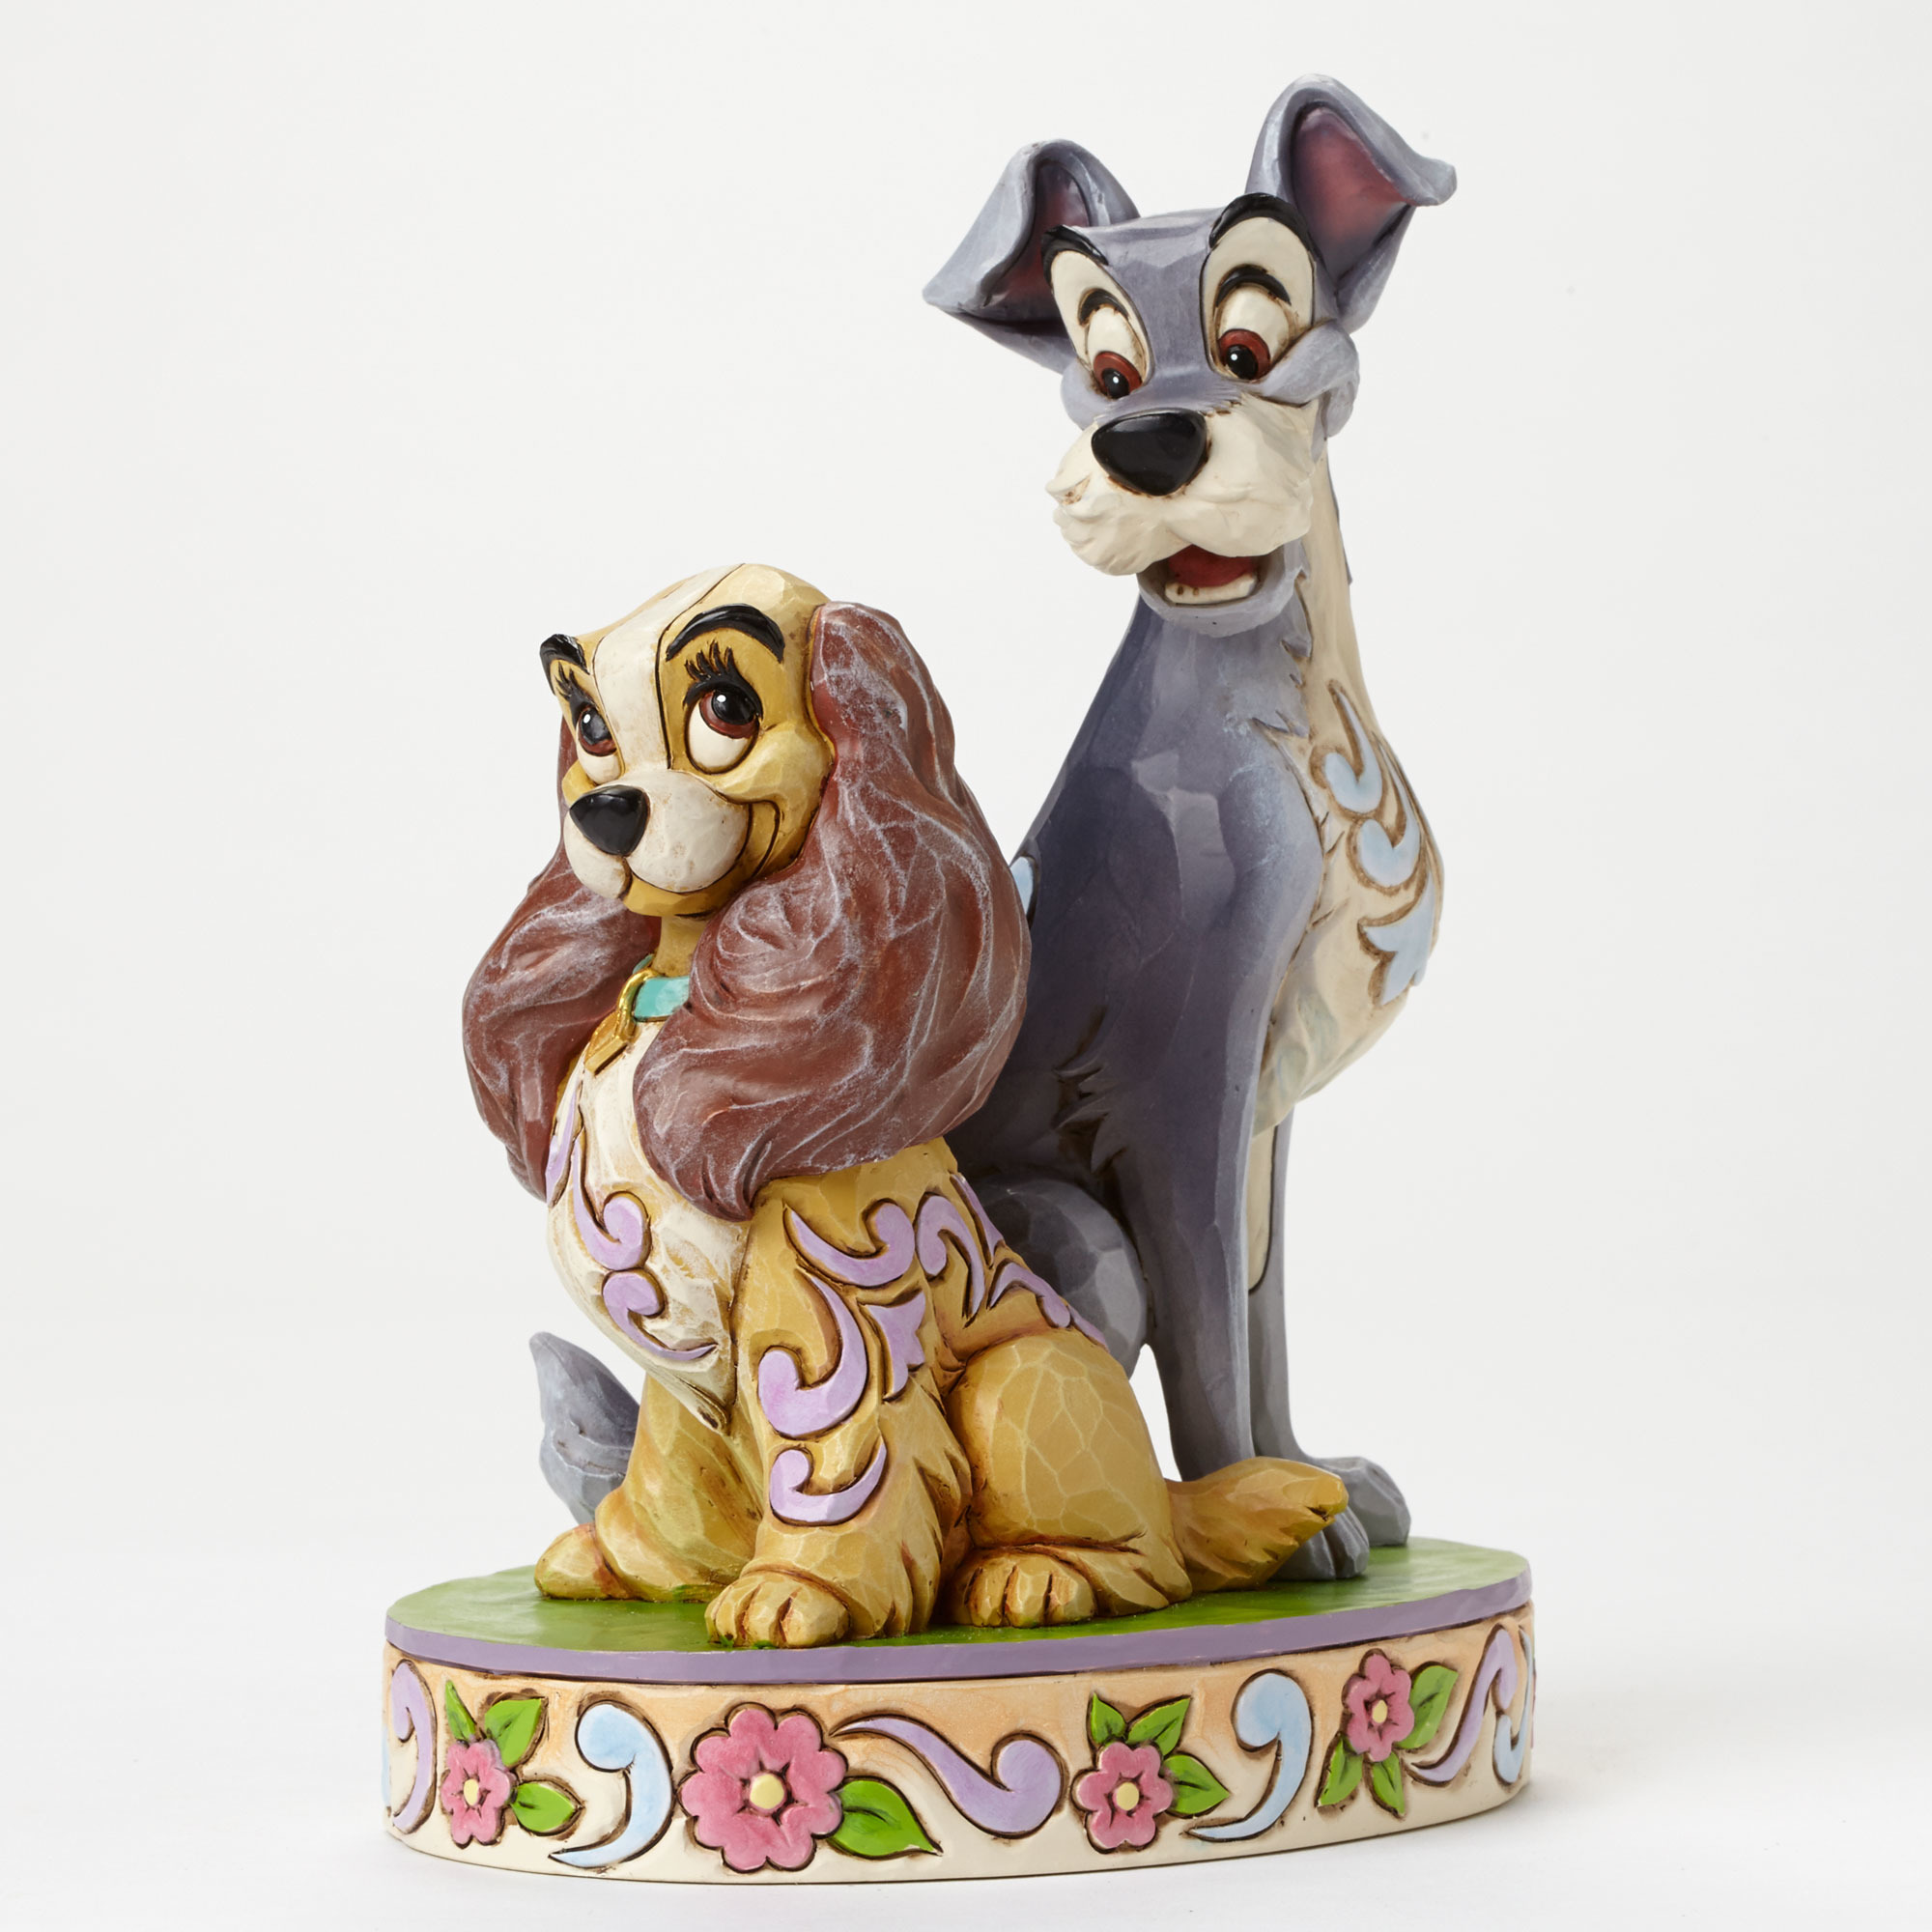 Lady & the Tramp 60th Anniversary